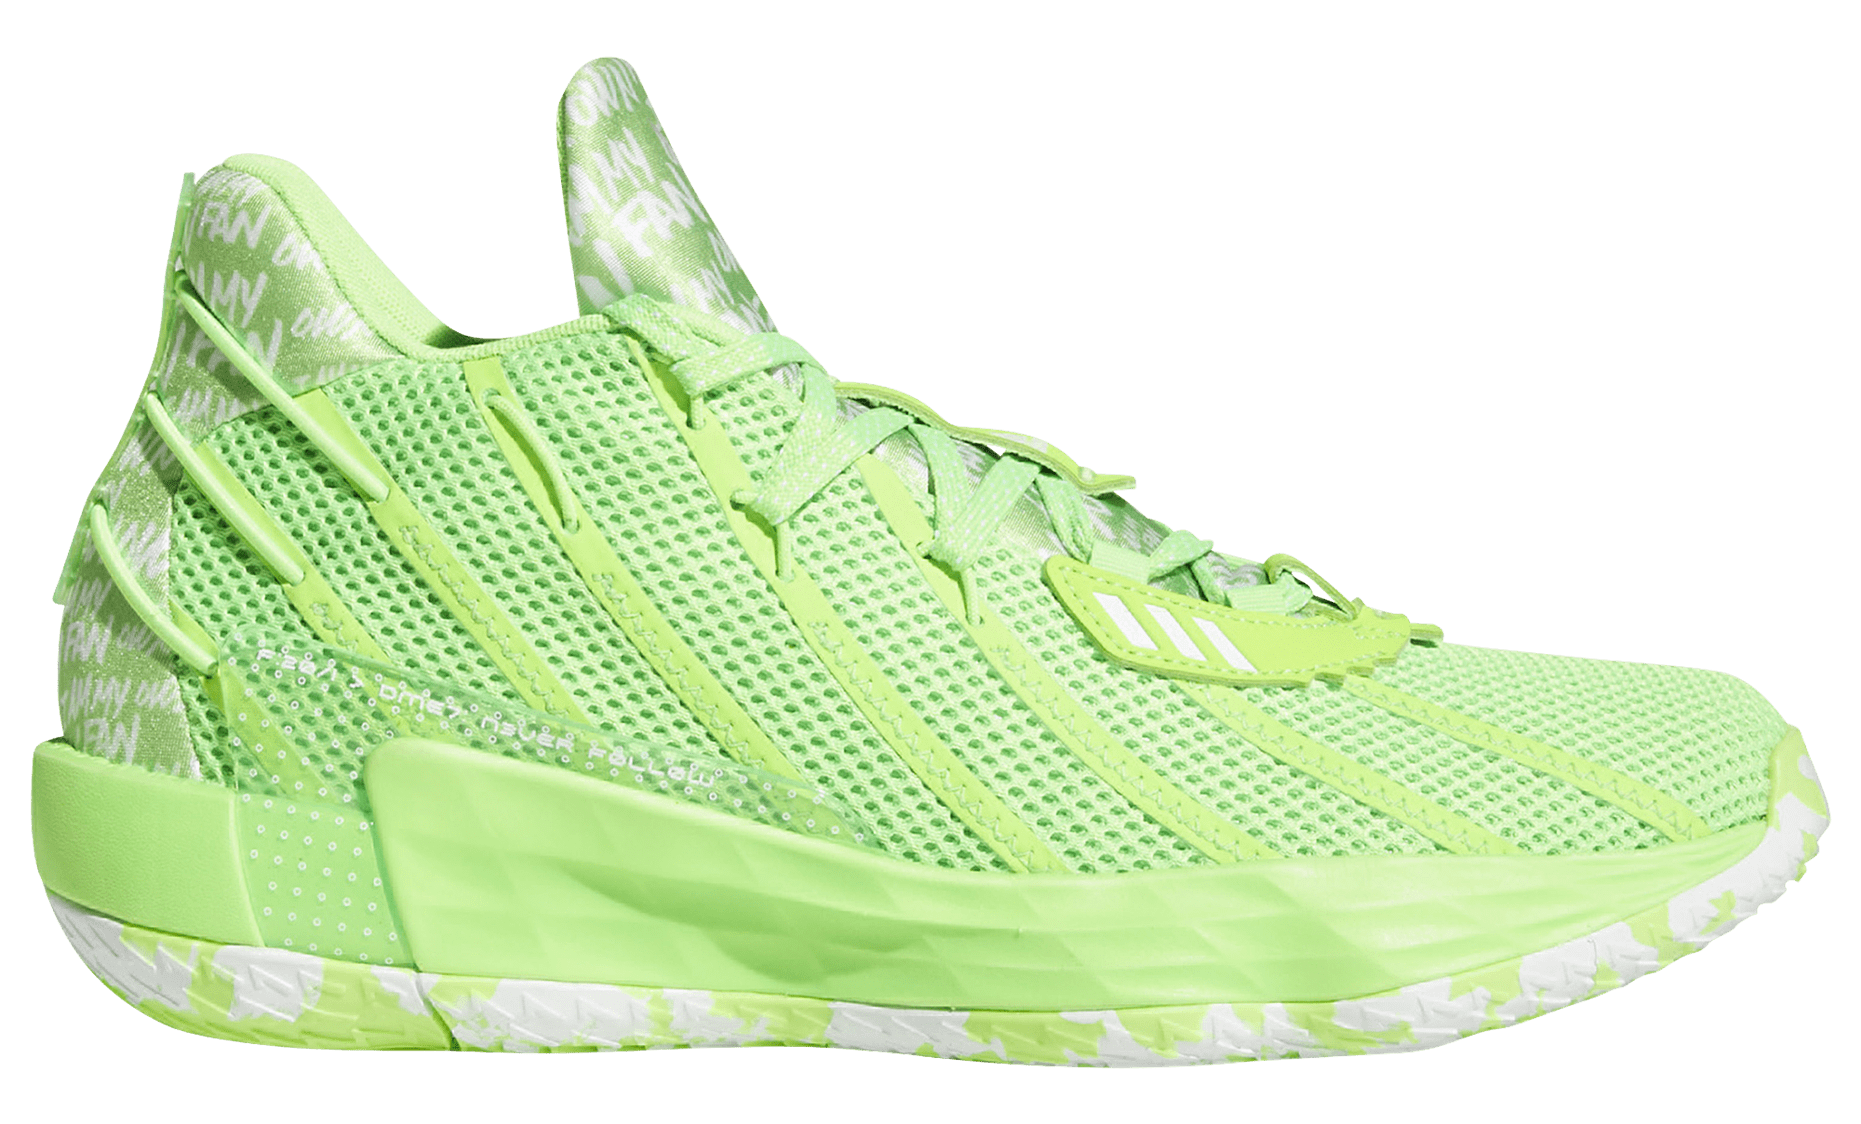 Adidas Dame 7 'Neon' Lateral